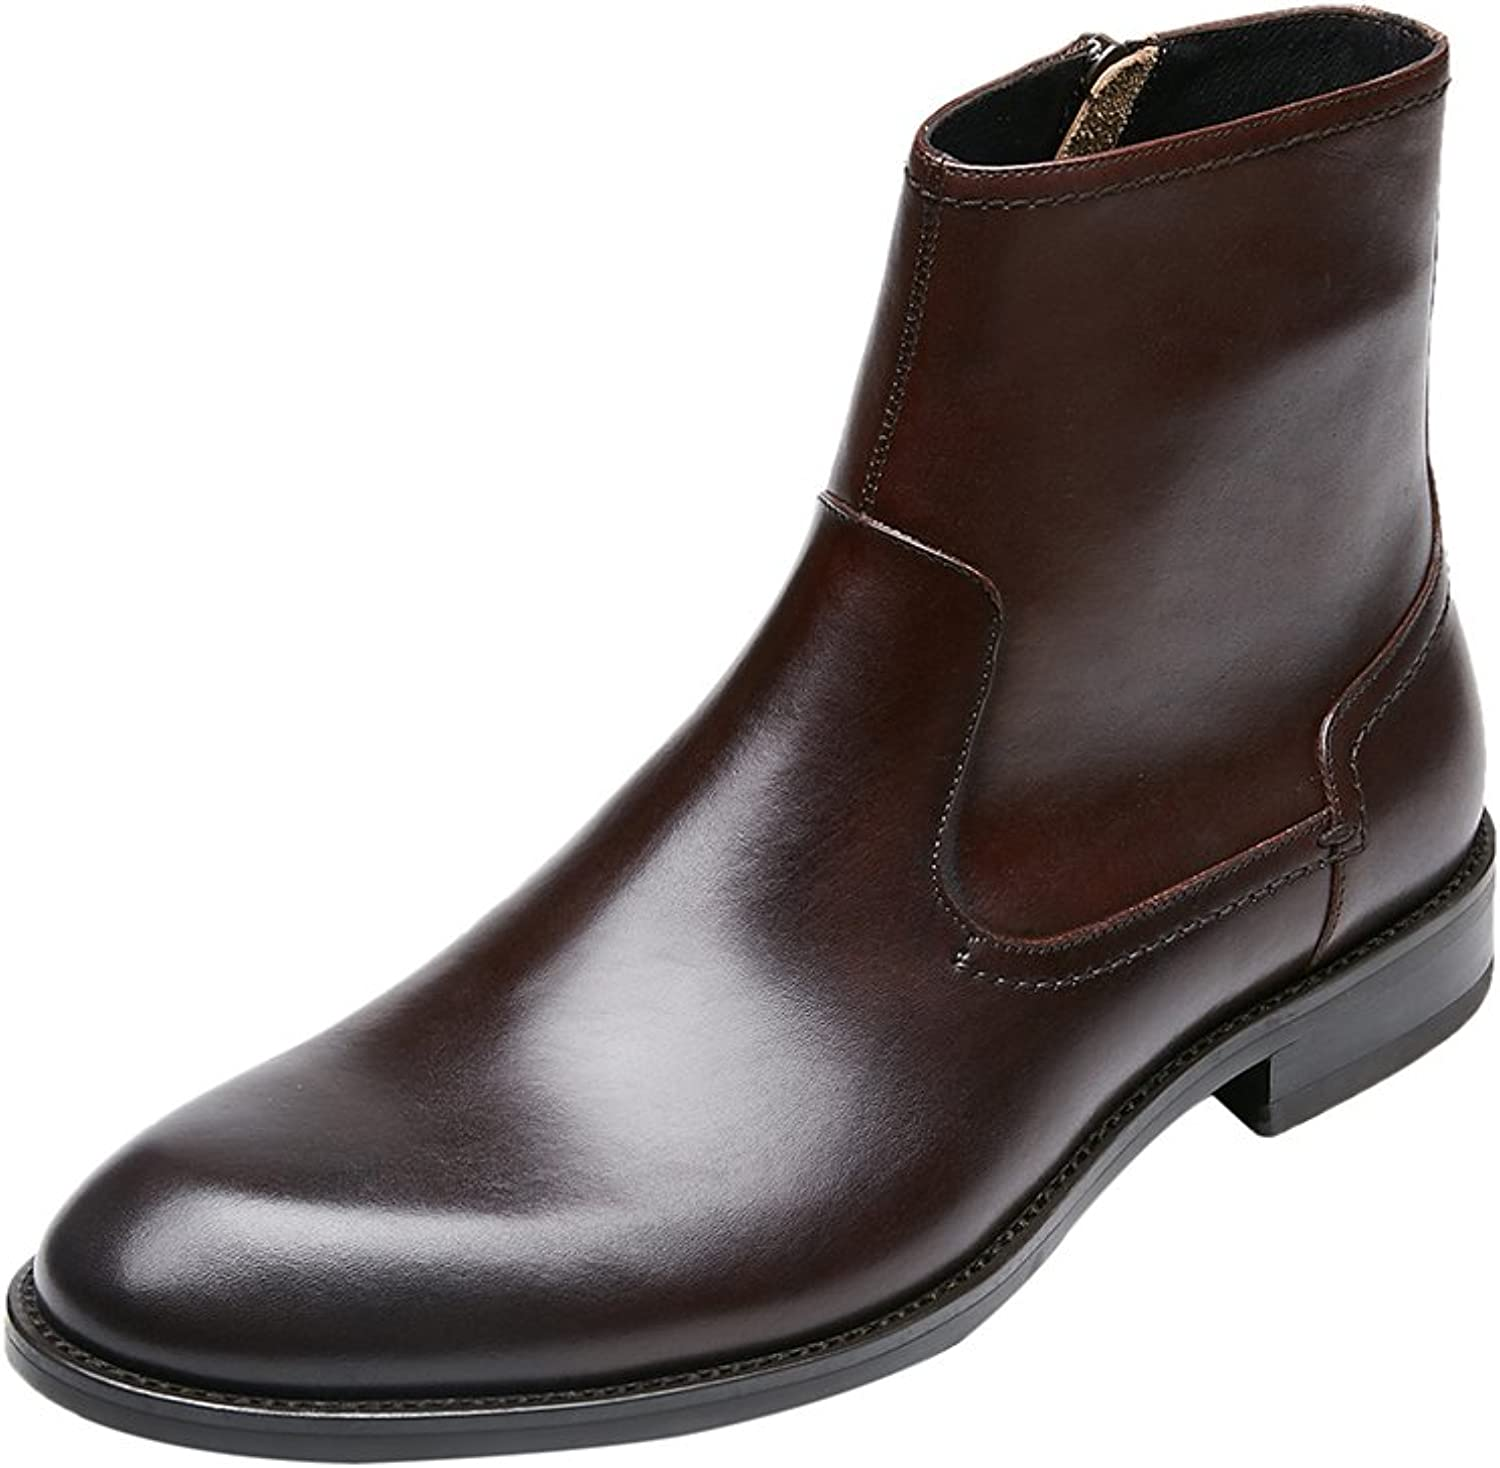 KINGSTEP Men's Fashion Comfort Leather Ankle Boots Zipper Dress Boots